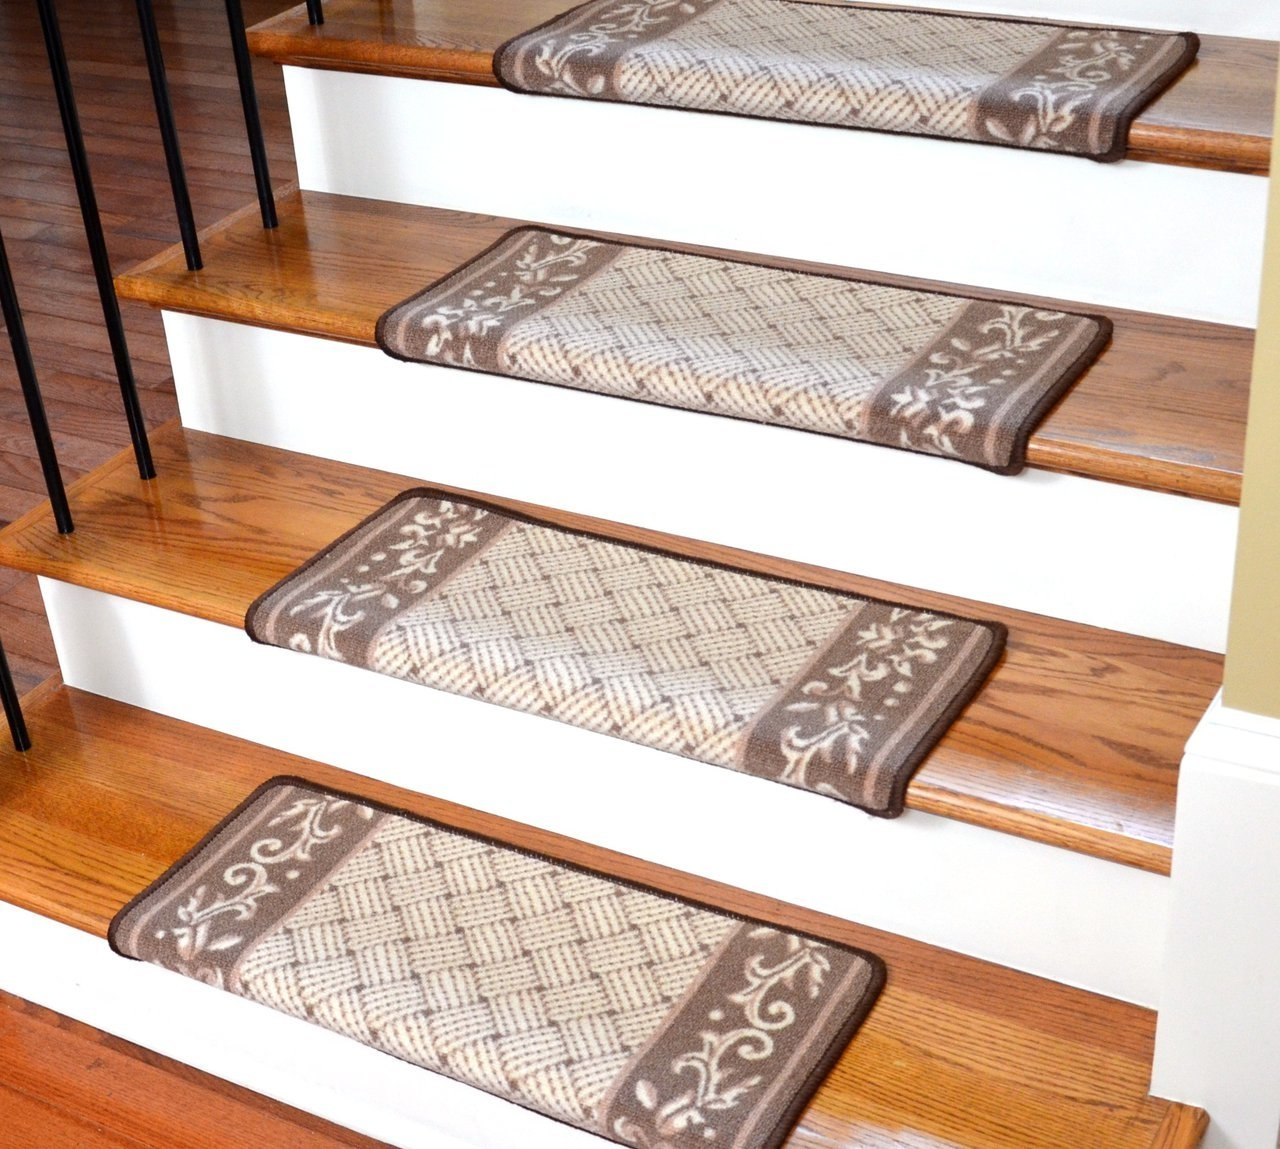 Accessories Oriental Carpet Stair Treads With Wood Stairs And Intended For Oriental Carpet Stair Treads (Image 2 of 15)